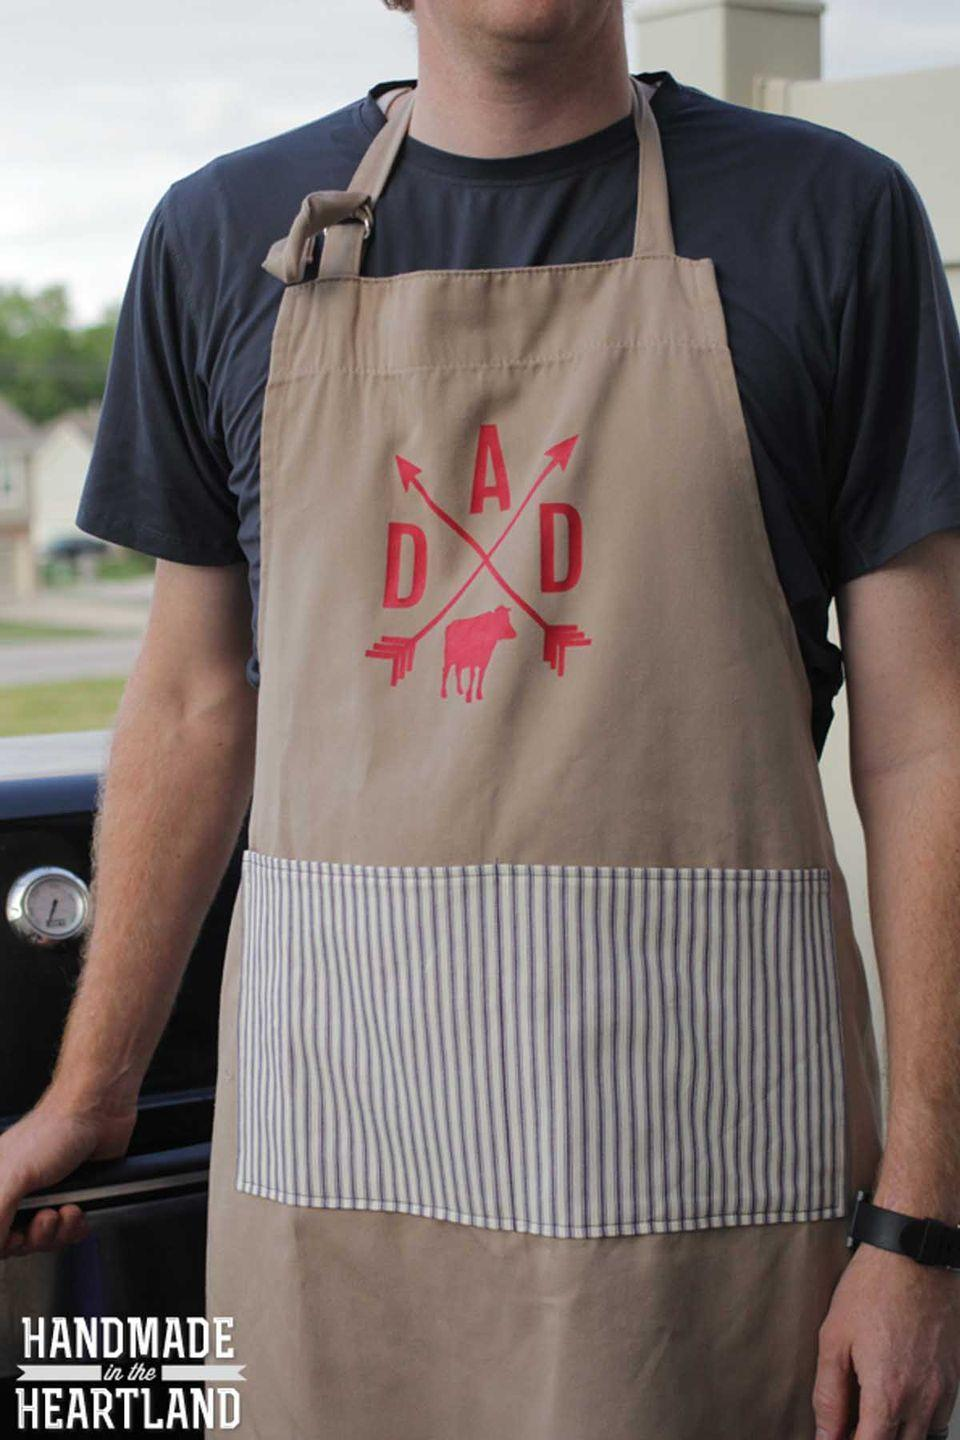 """<p>Dad can grill in style with this spiffy apron. </p><p><em><strong>Get the tutorial at </strong><a href=""""http://www.handmadeintheheartland.com/2014/06/diy-fathers-day-grilllmaster-bbq-apron.html"""" rel=""""nofollow noopener"""" target=""""_blank"""" data-ylk=""""slk:Handmade in the Heartland"""" class=""""link rapid-noclick-resp""""><strong>Handmade in the Heartland</strong></a><strong>. </strong></em></p>"""